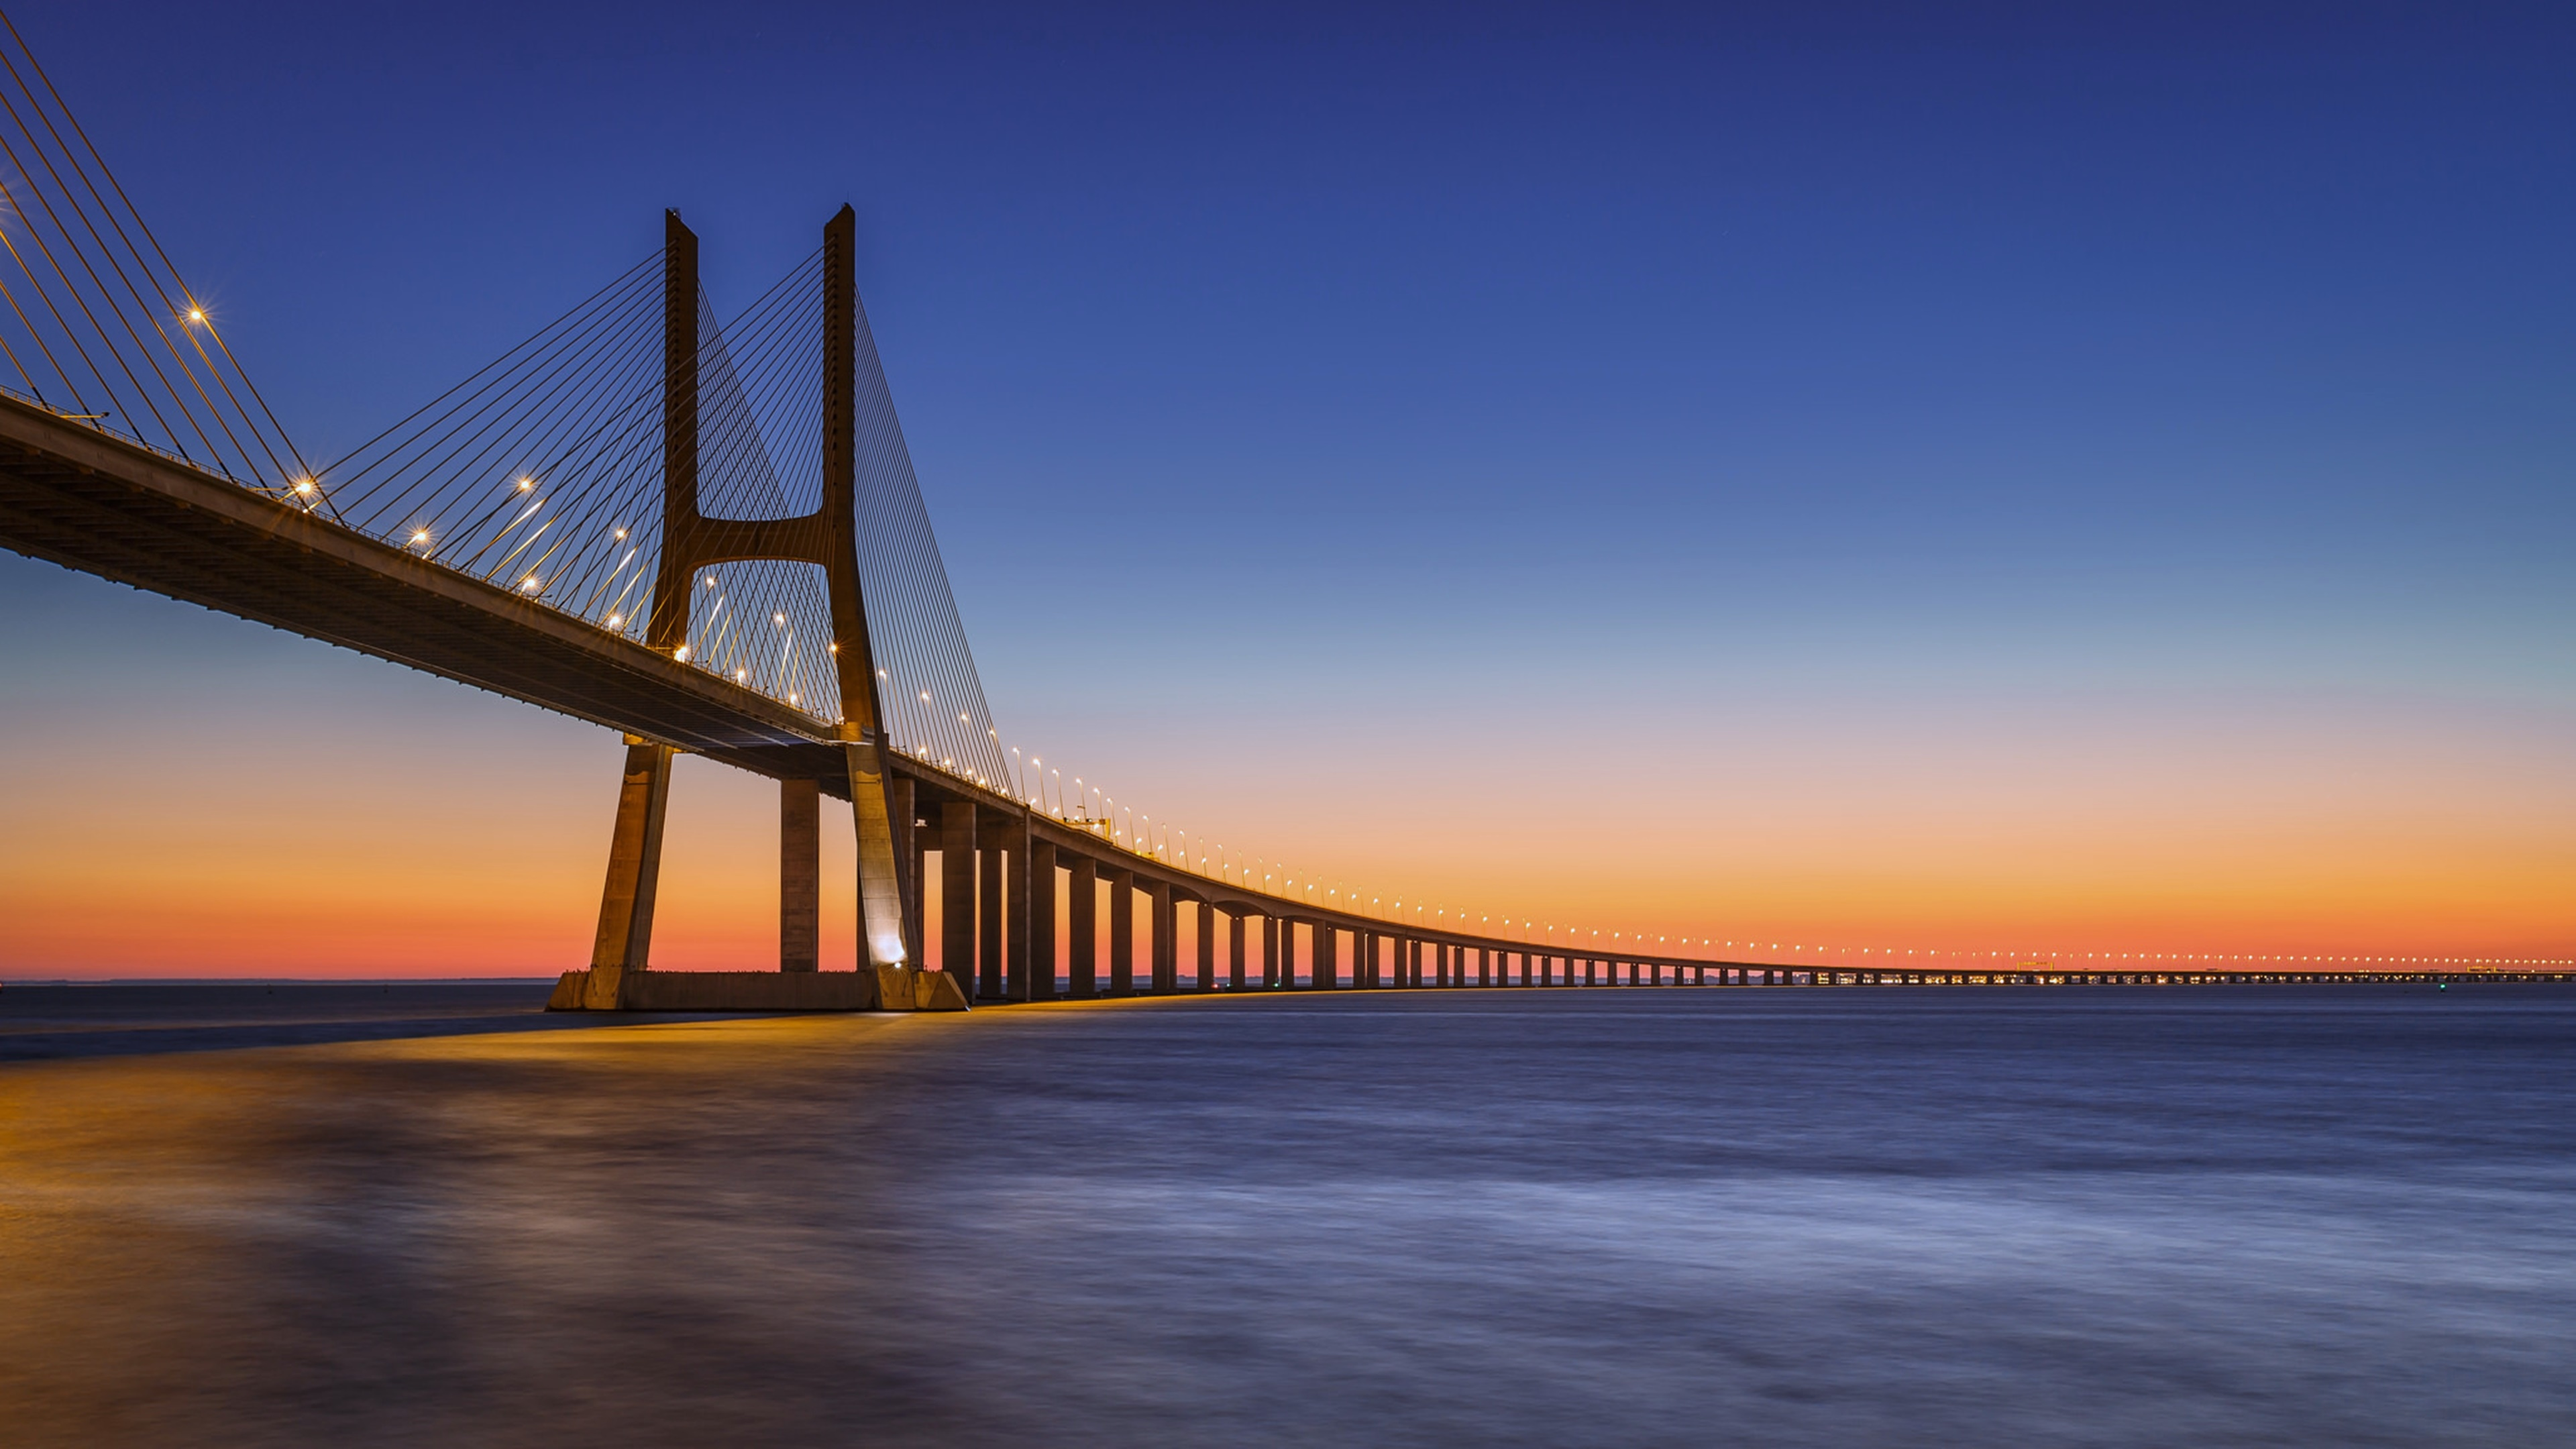 vasco-da-gama-bridge-wallpapers-hd-70785-6584245